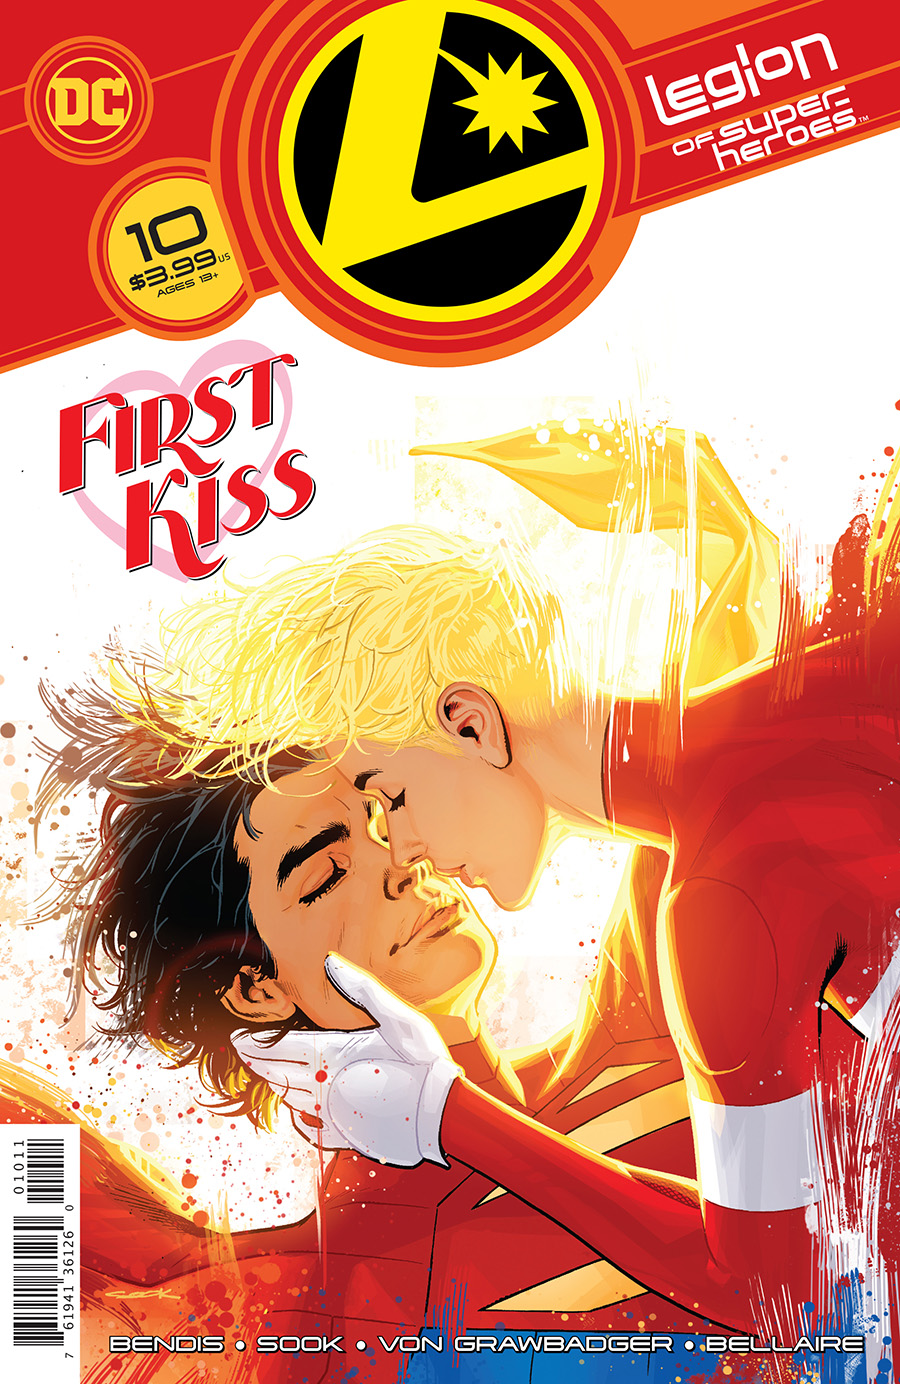 6386_xl ComicList: New Comic Book Releases List for 10/28/2020